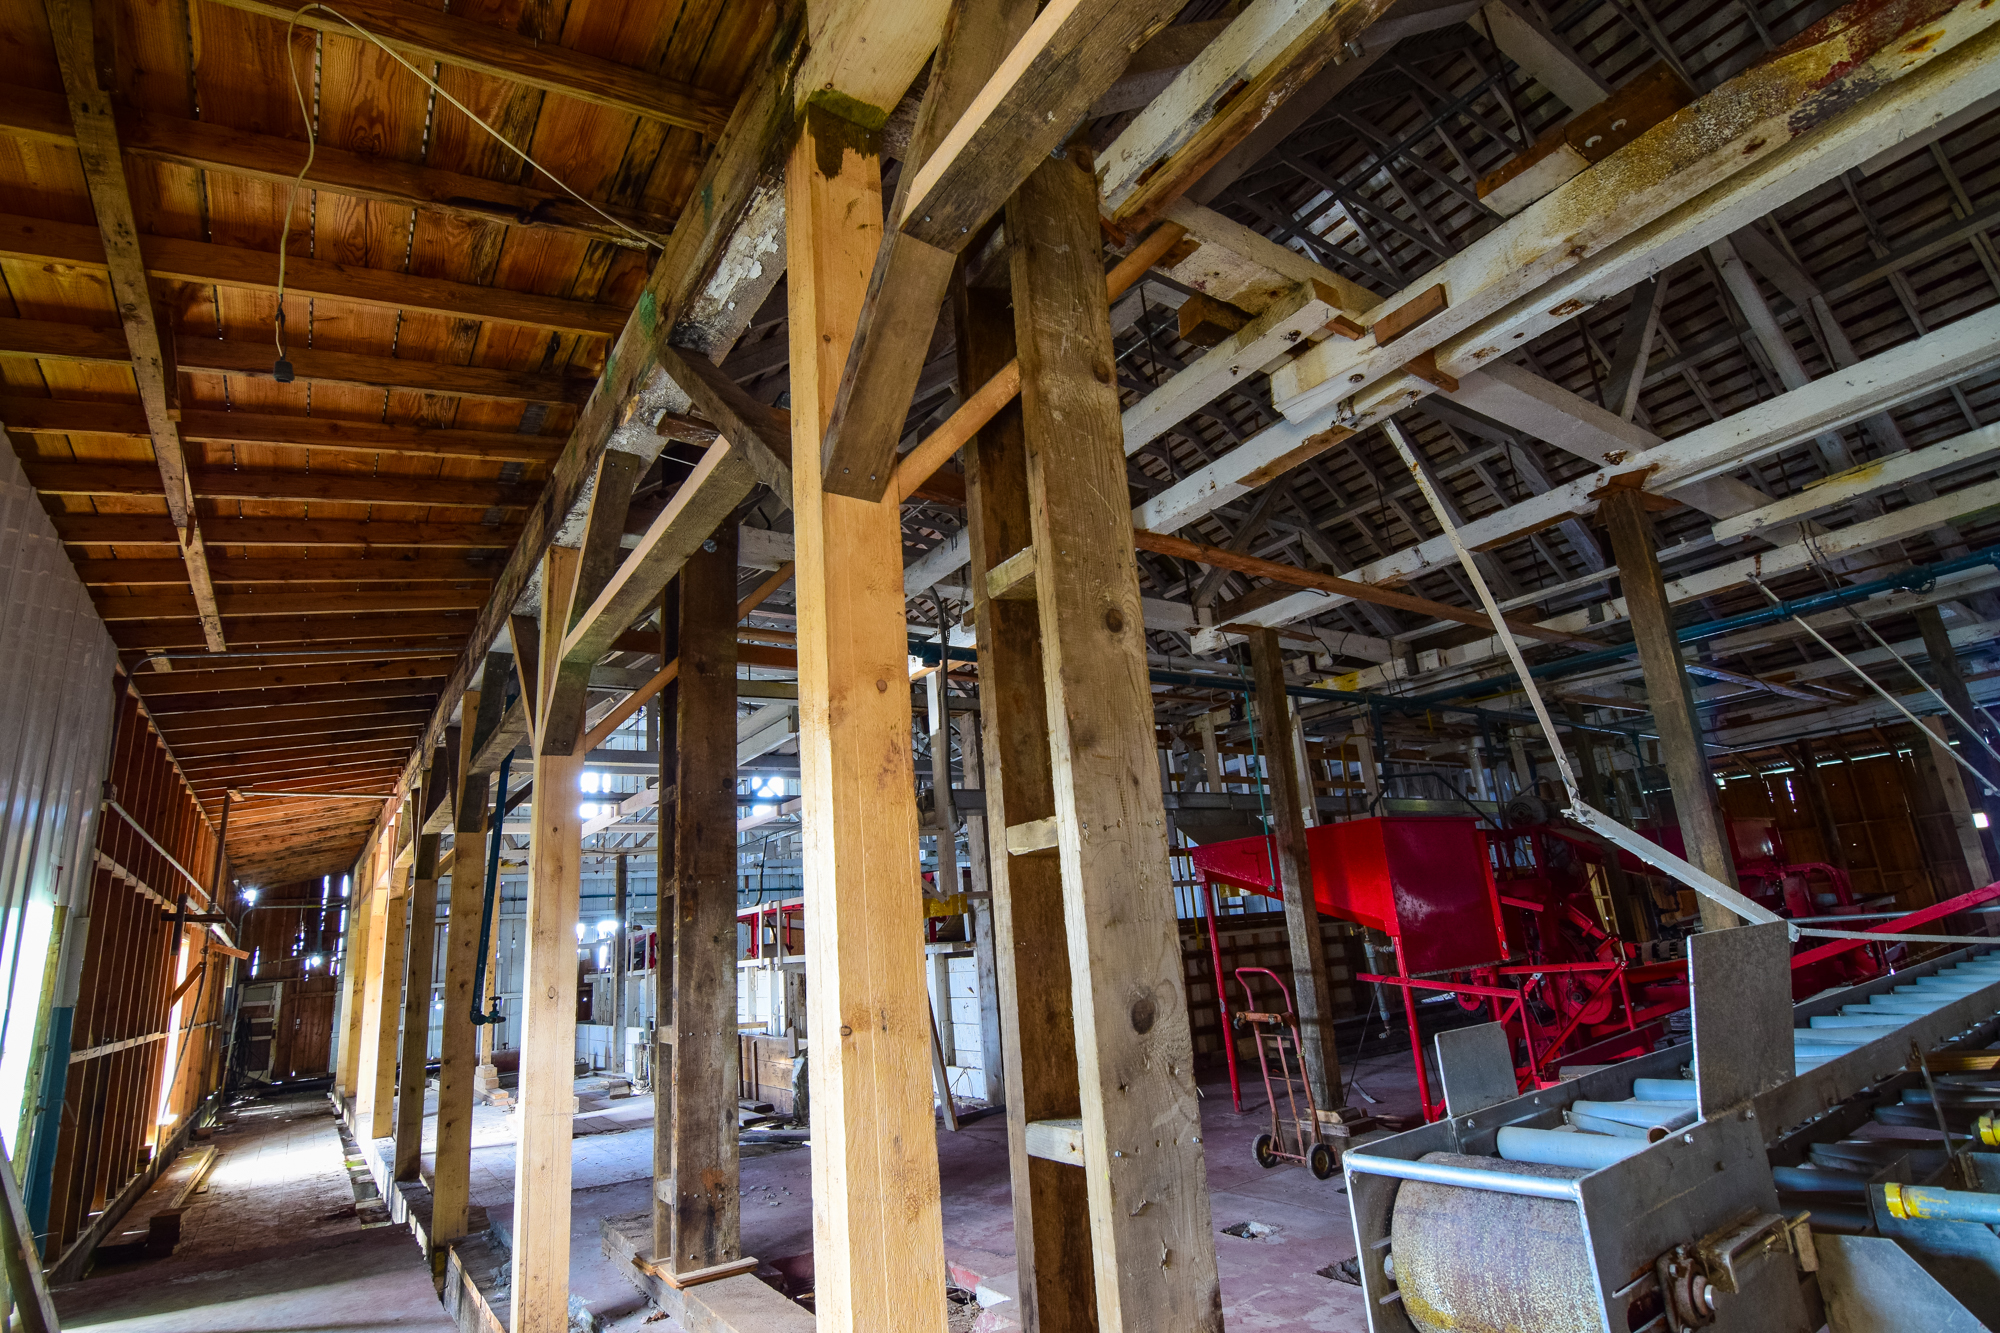 Diversified Diving uses beams that have been milled by Kevin Merry using locally harvested timber to replace rotten ones. The project explores every opportunity to stimulate the local economy.